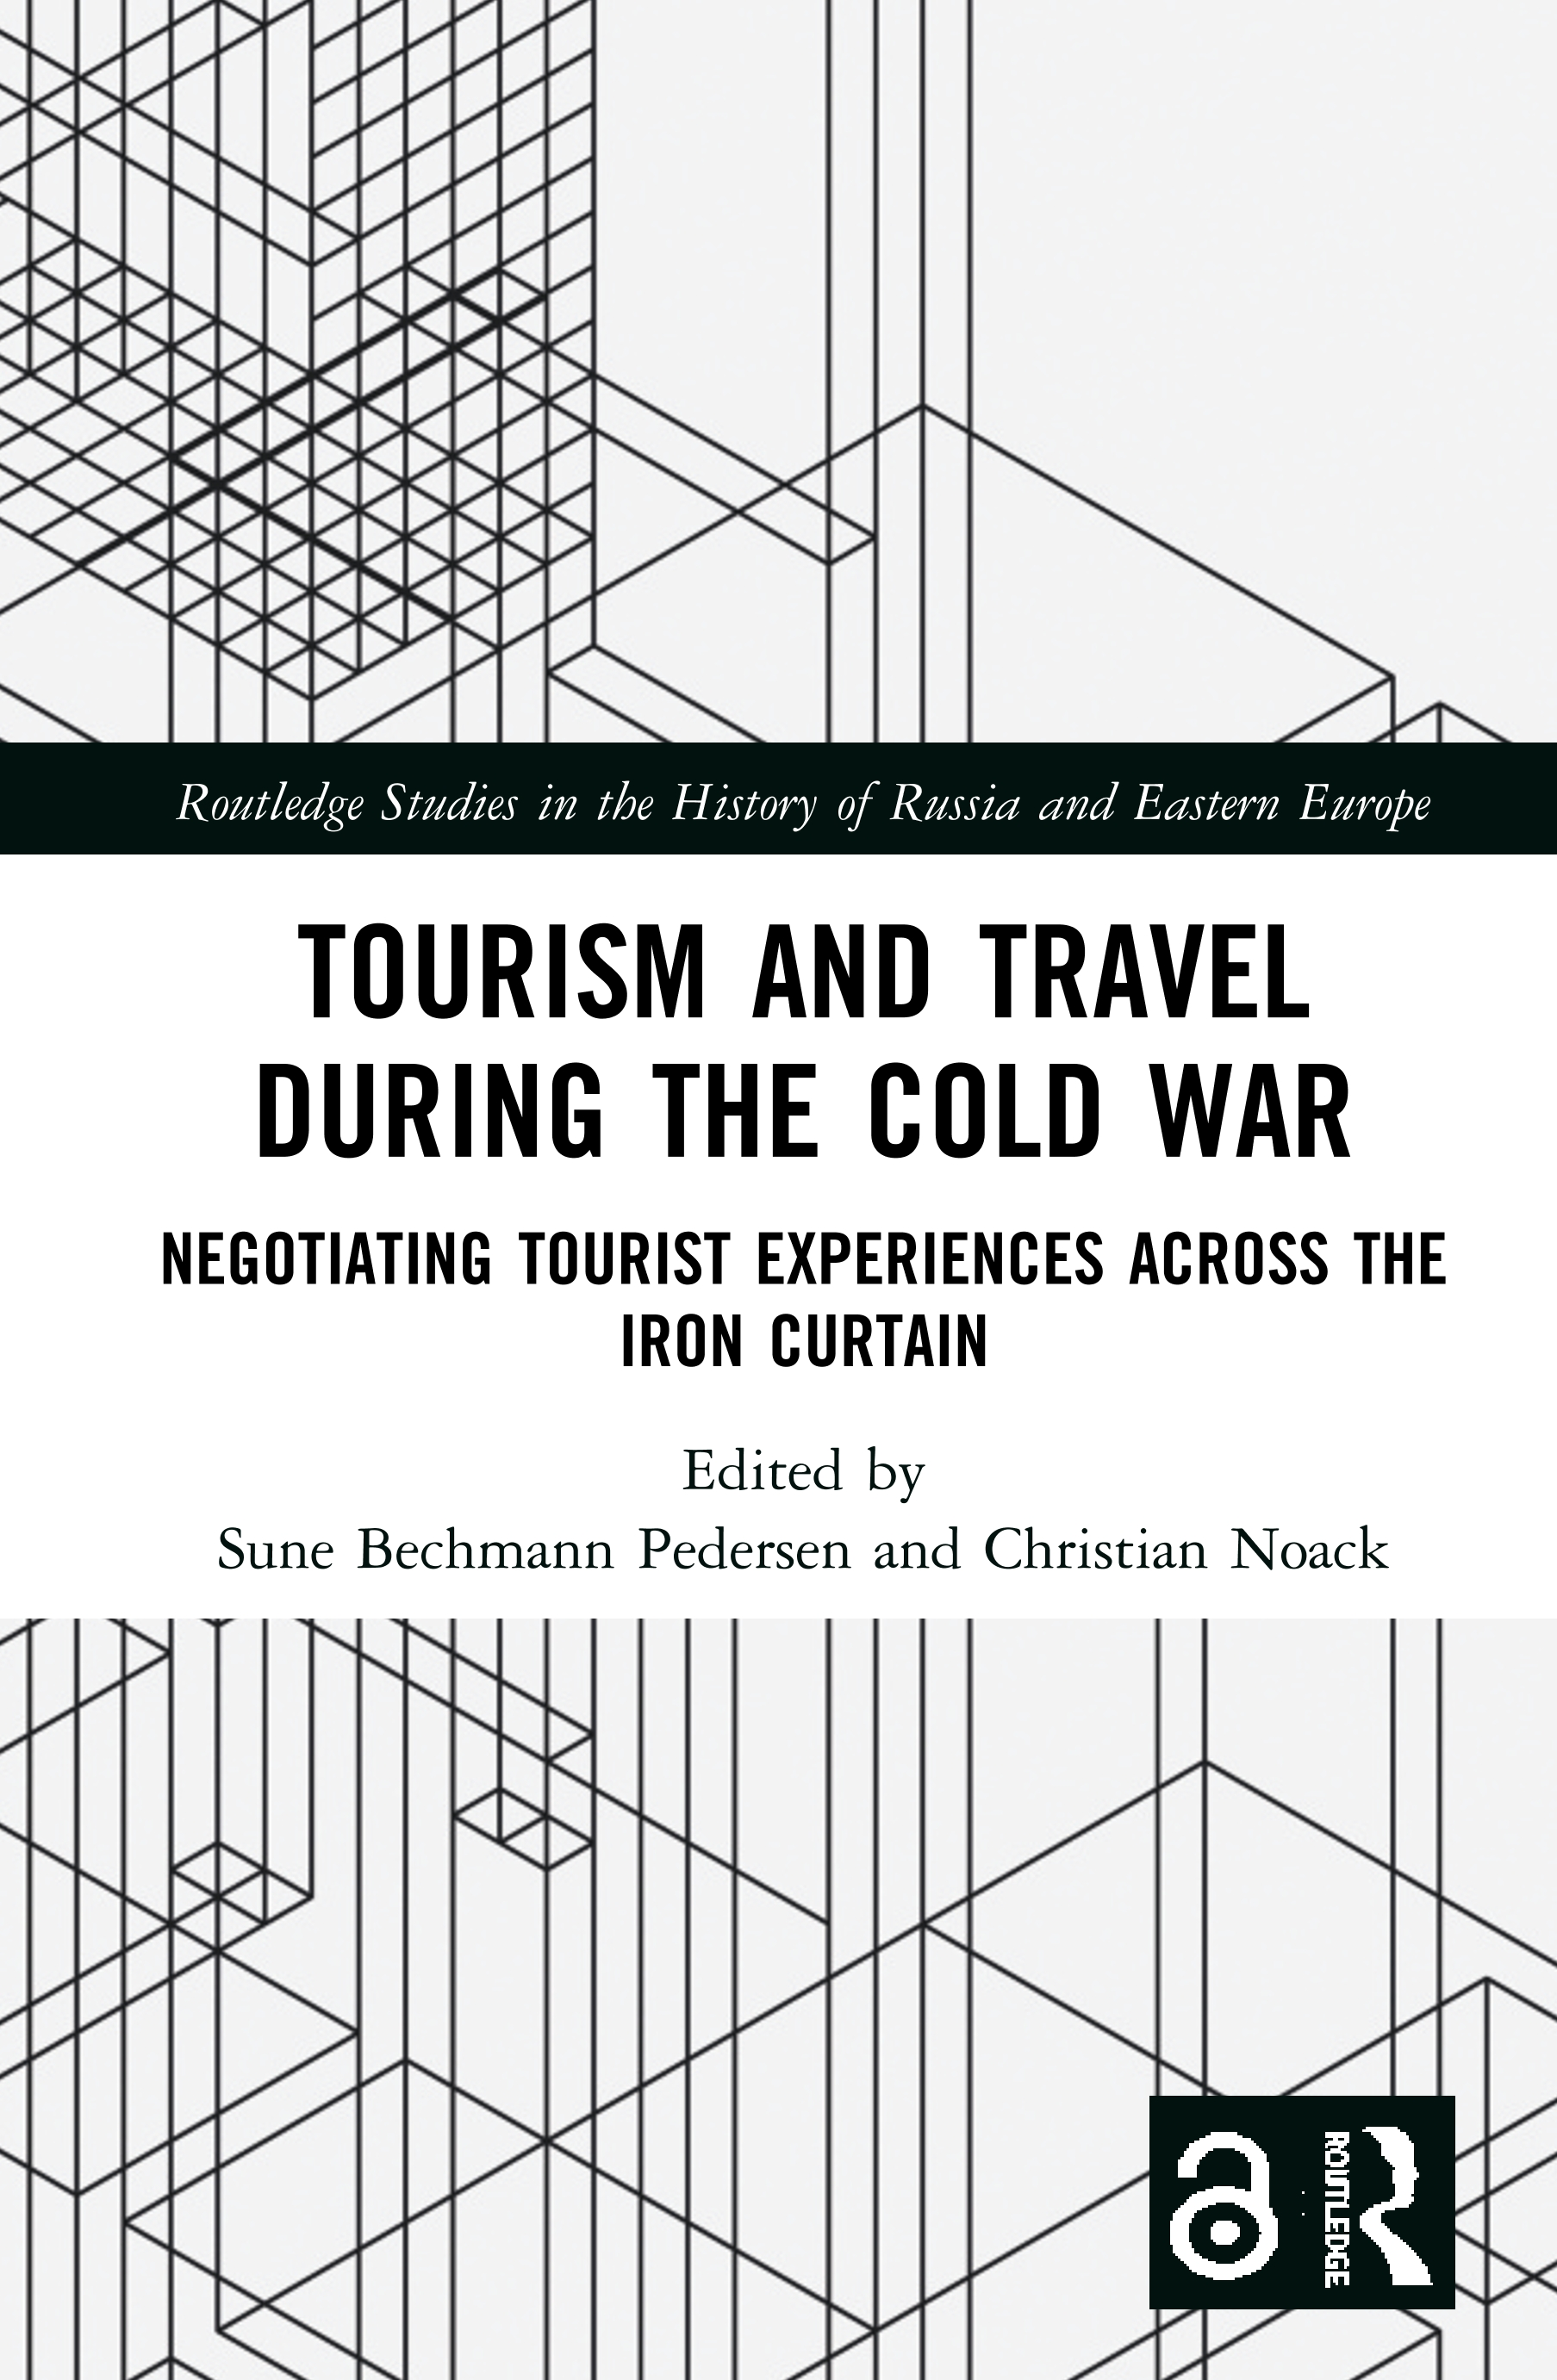 Tourism and Travel during the Cold War: Negotiating Tourist Experiences across the Iron Curtain book cover